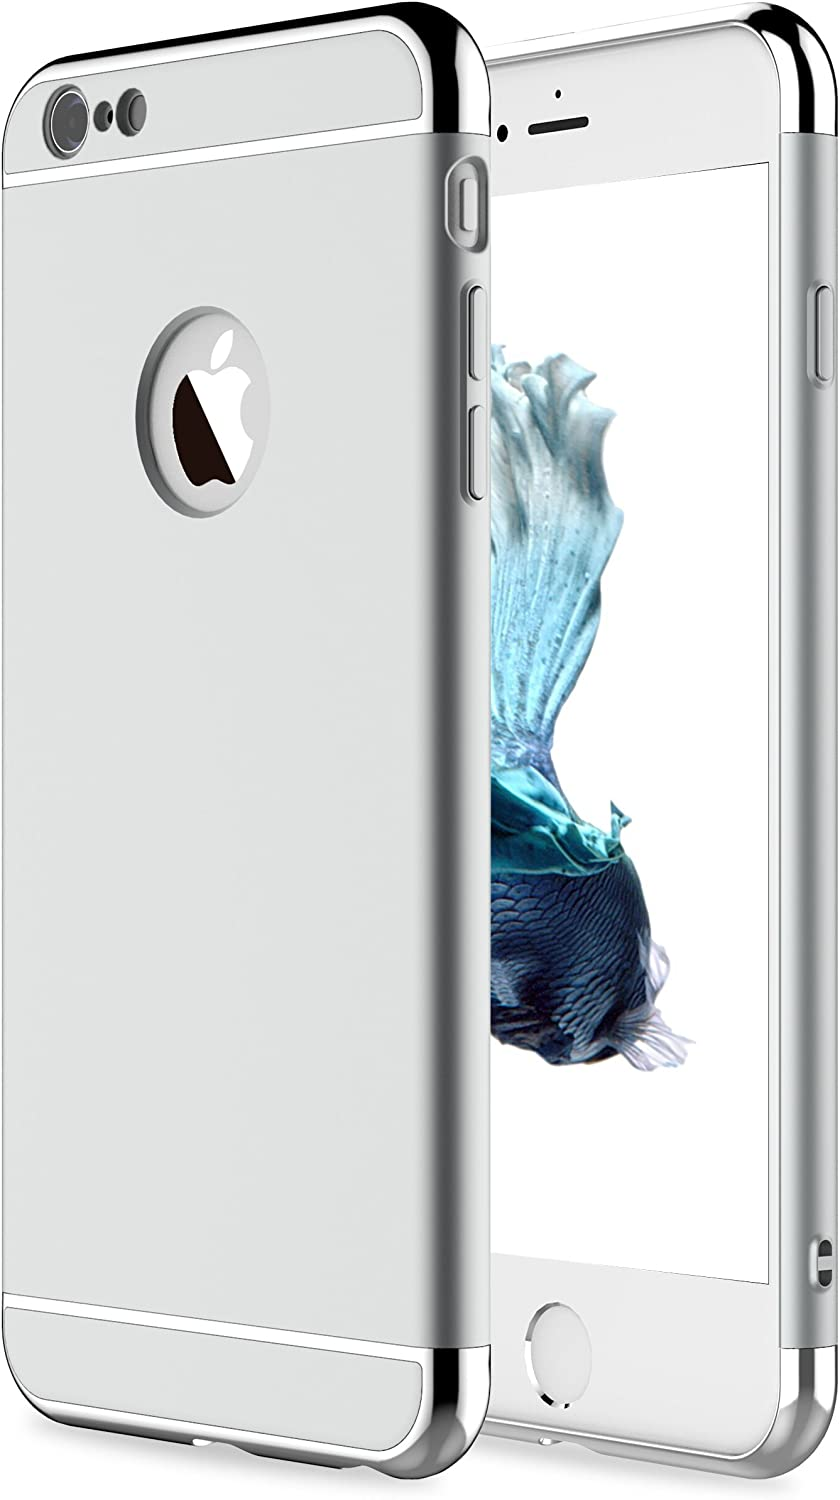 """RORSOU iPhone 6 Case, iPhone 6s Case, 3 in 1 Ultra Thin and Slim Hard Case Coated Non Slip Matte Surface with Electroplate Frame for Apple iPhone 6 (4.7"""") and iPhone 6S (4.7"""") - Silver"""